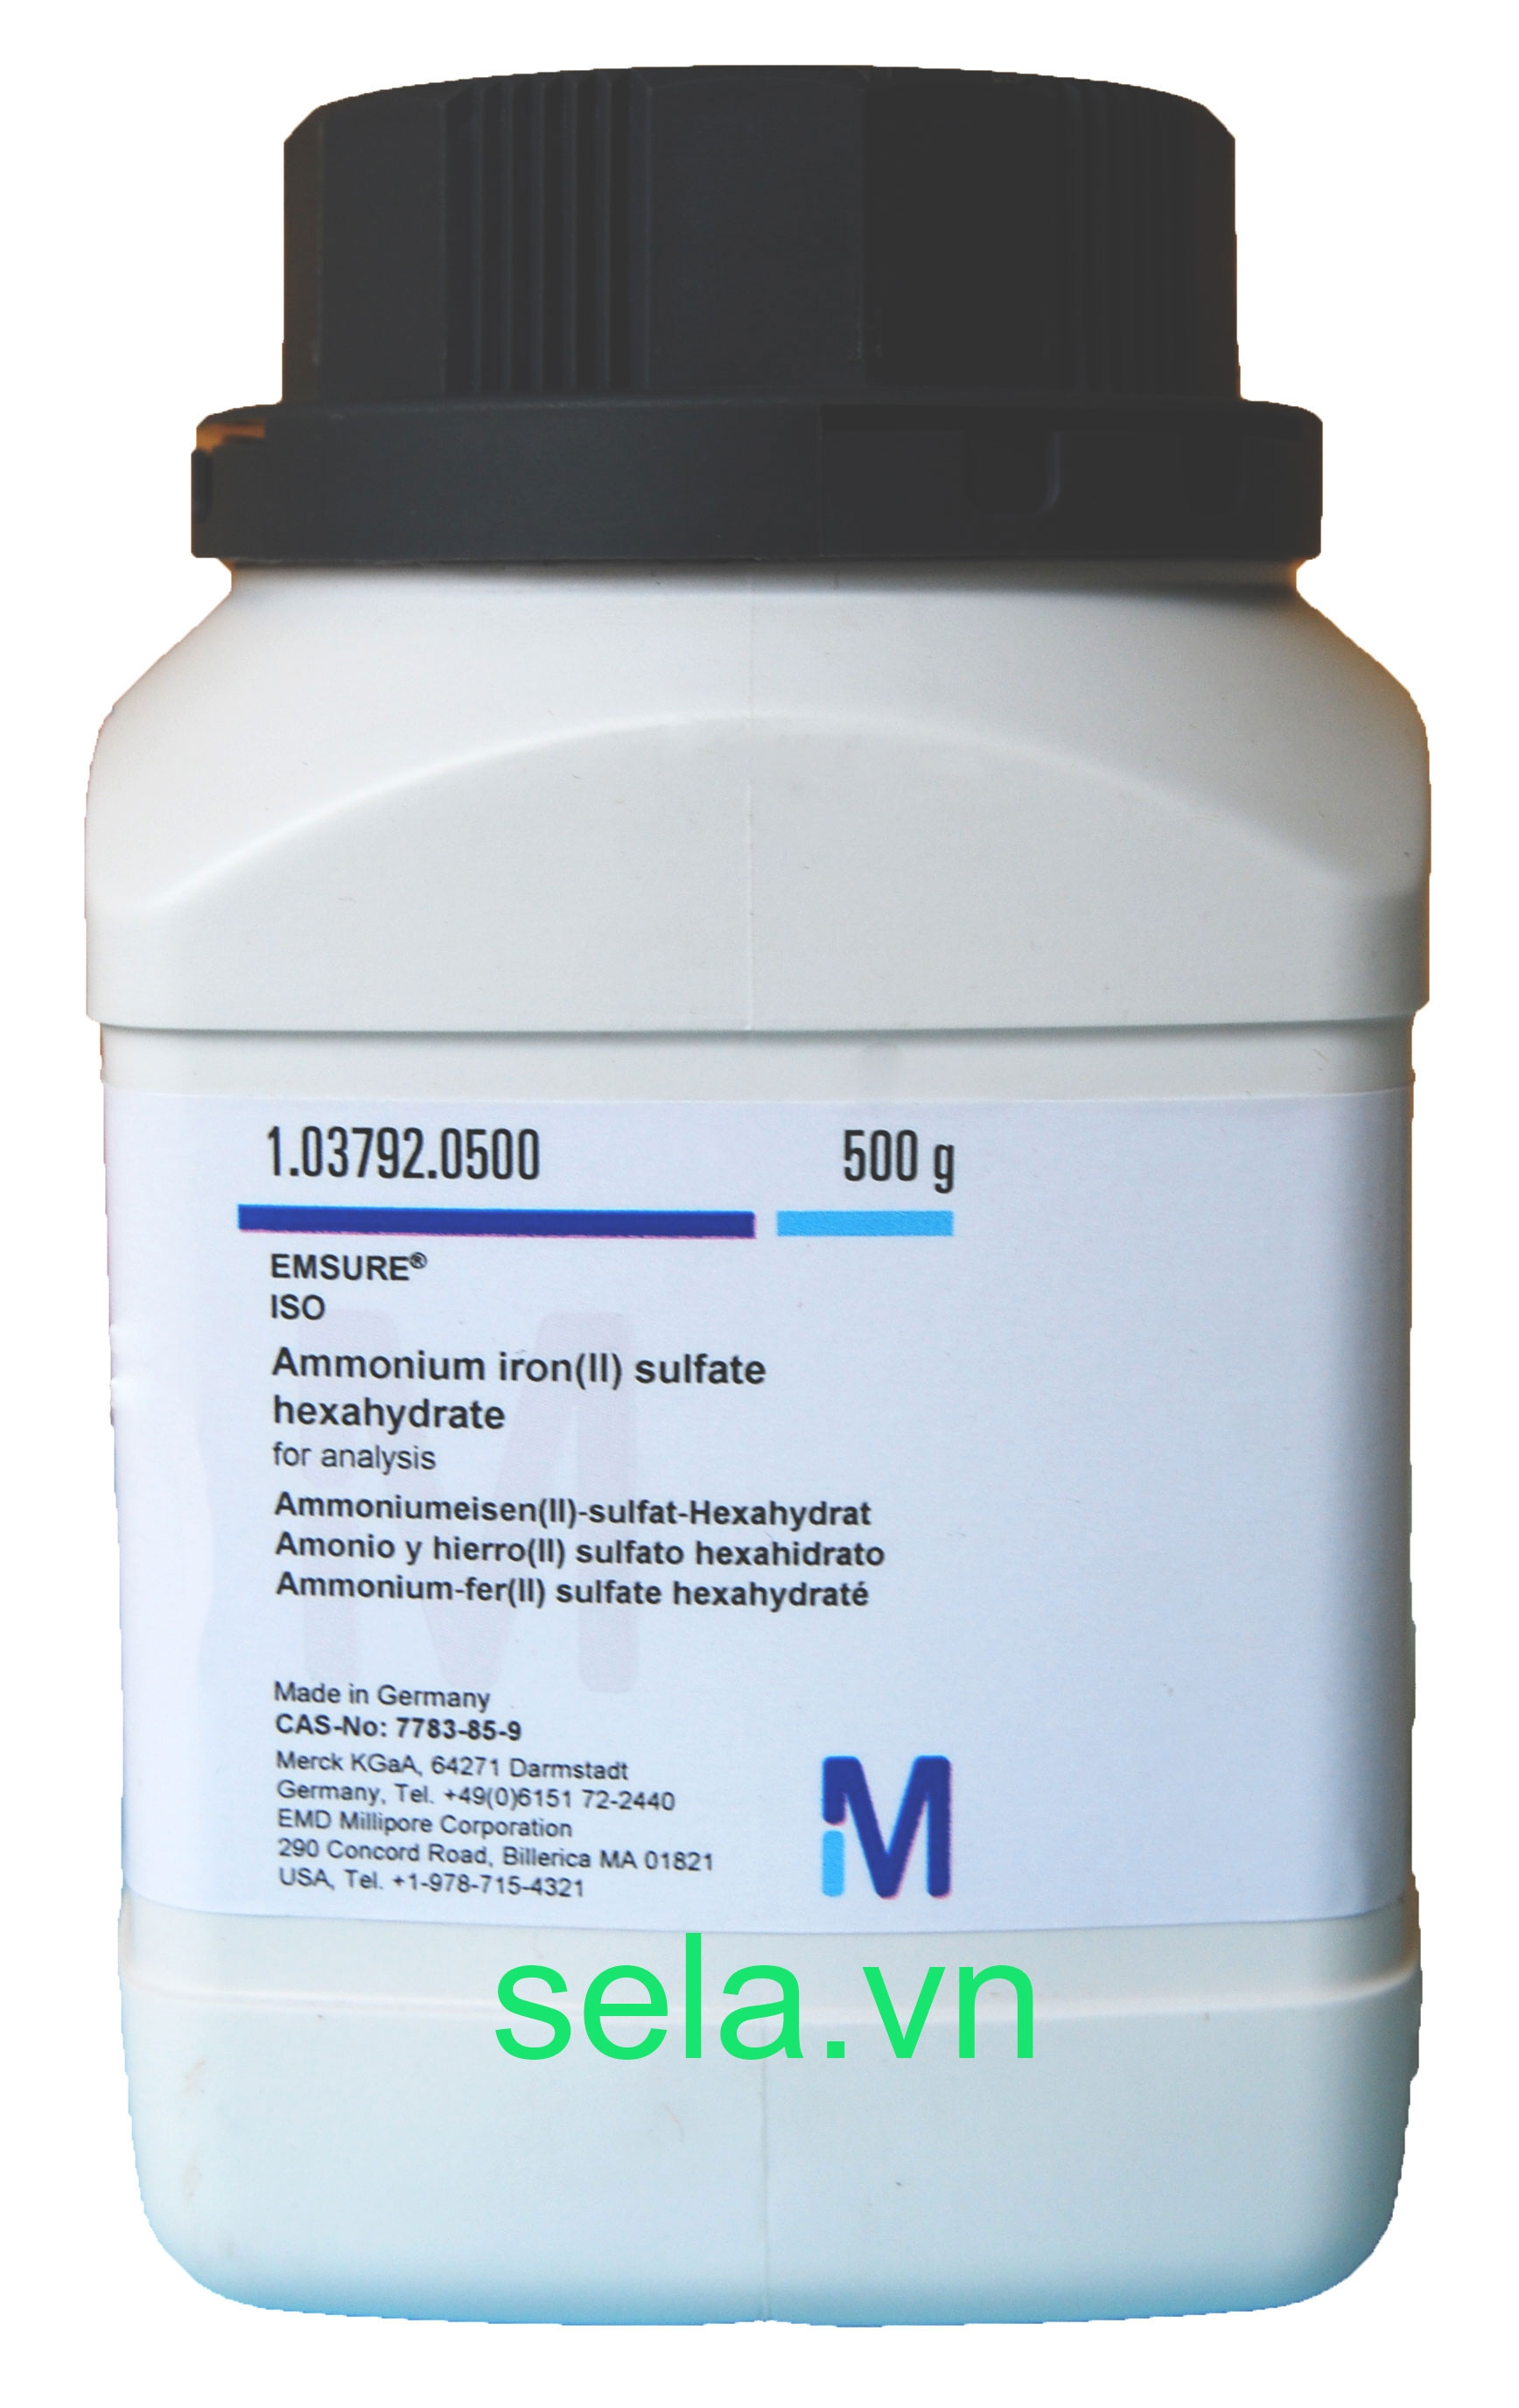 Ammonium iron(II) sulfate hexahydrate for analysis EMSURE® ISO